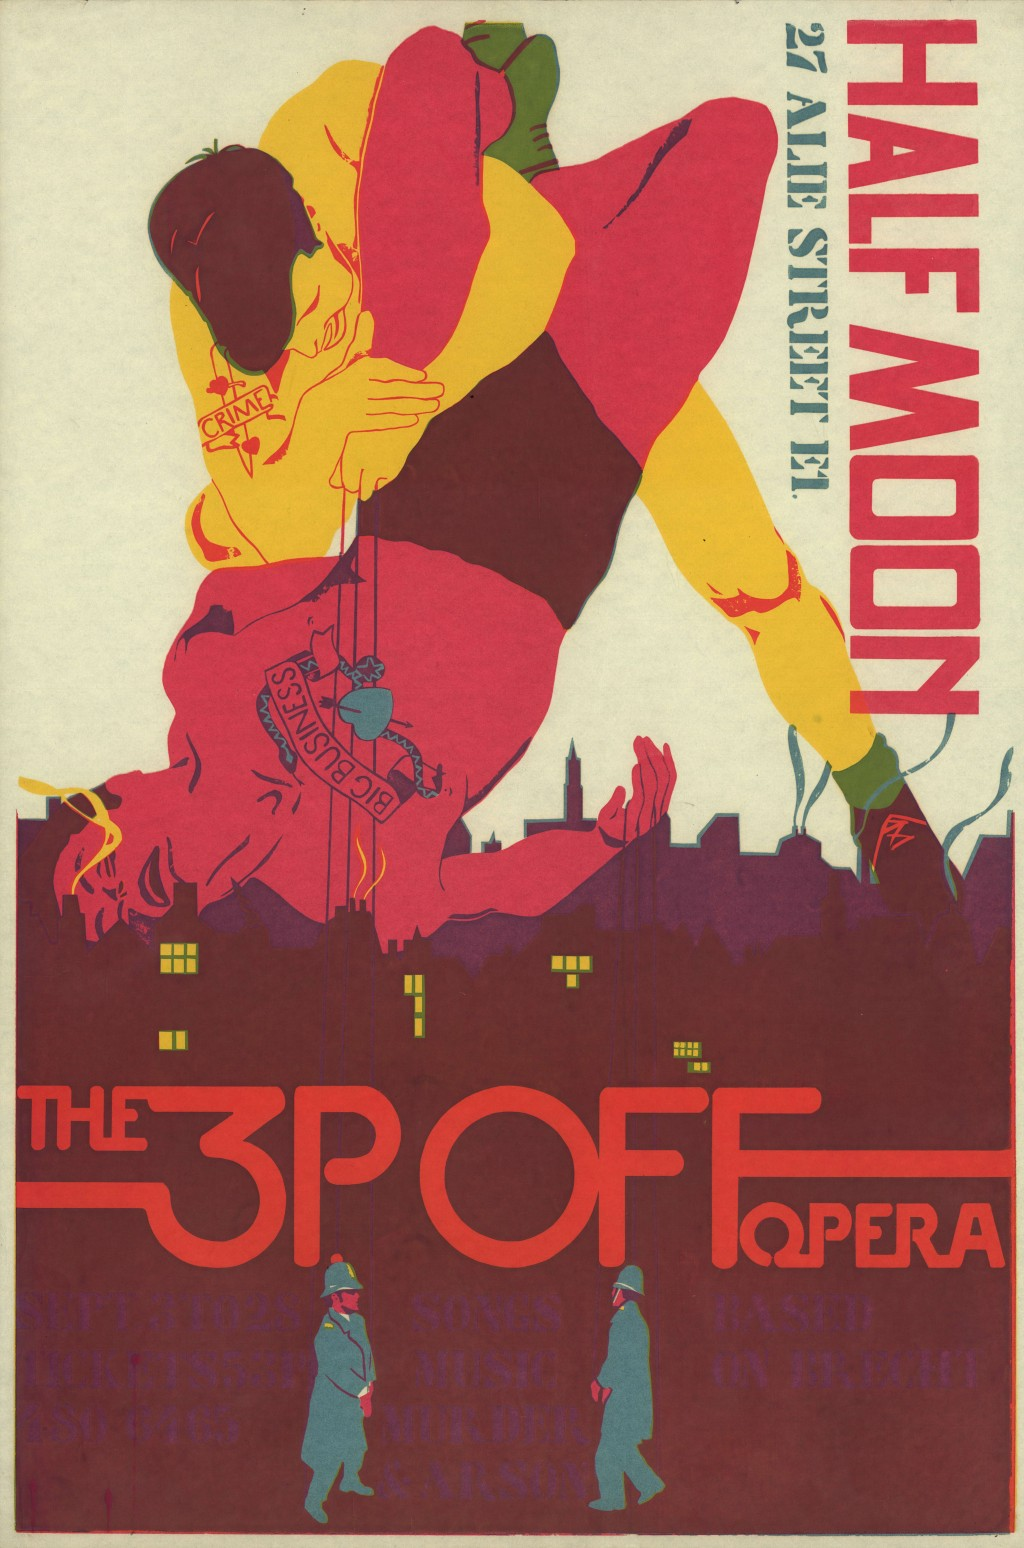 The 3P Off Opera poster